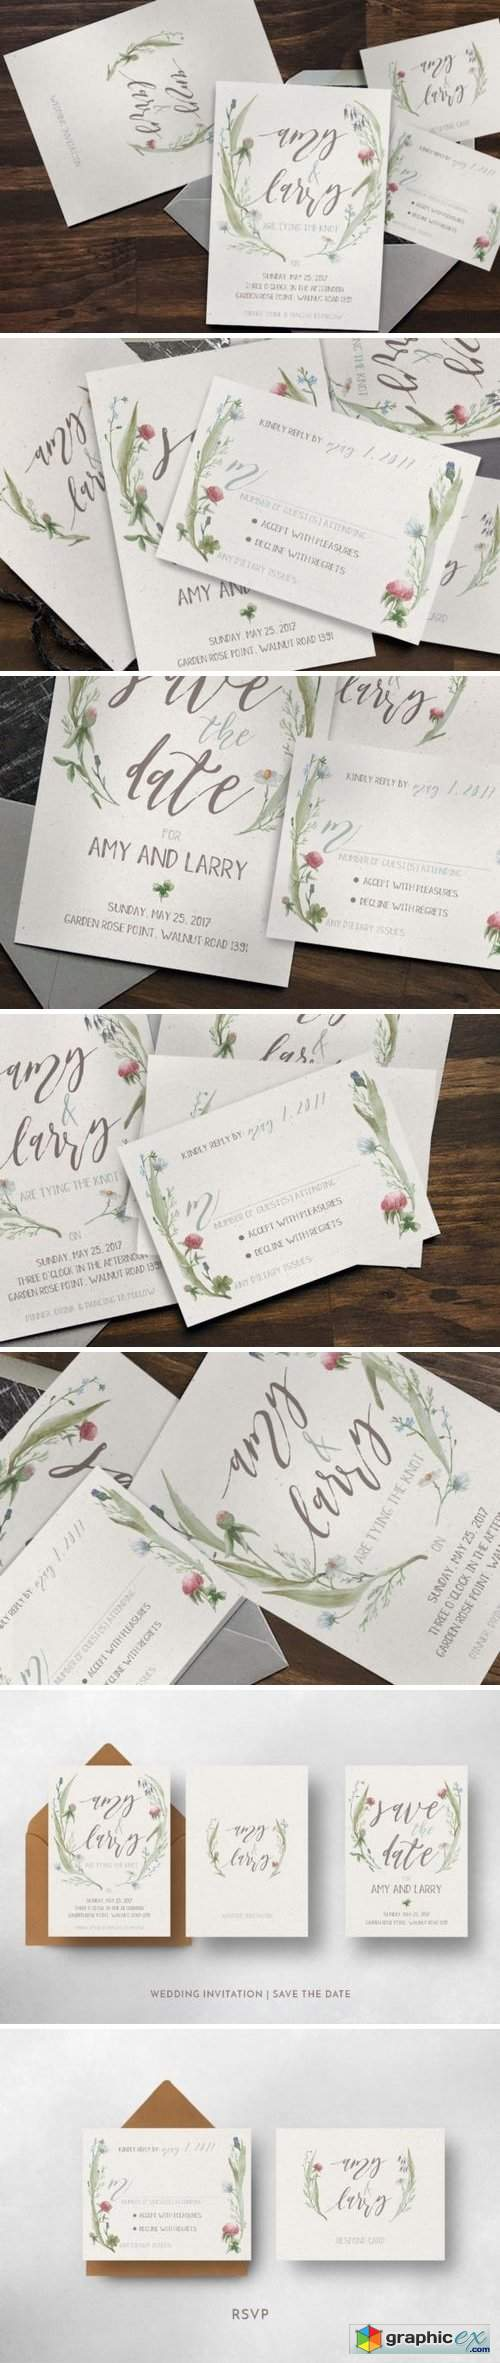 Watercolor Flower Wedding Invitation Suite